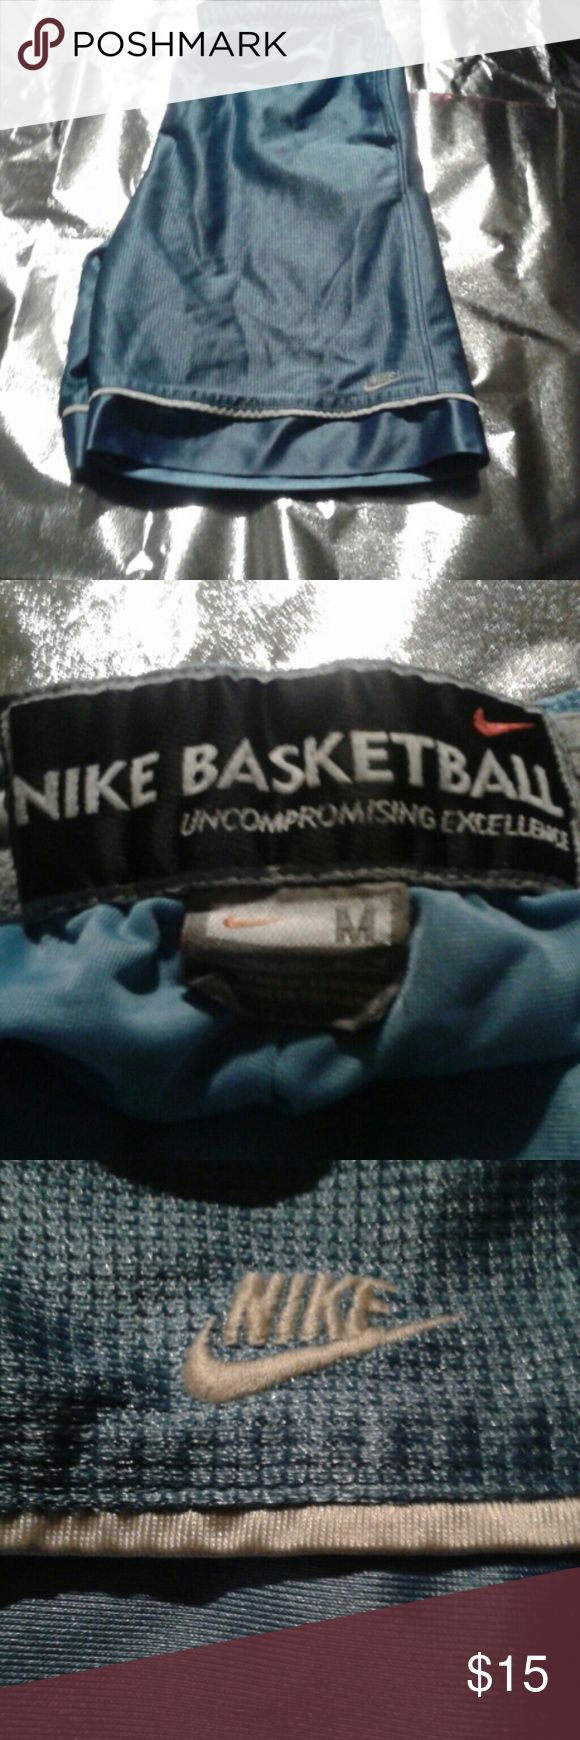 Nike basketball shorts Blue M (8-10) I'm guessing because of the size they are women's.  Too big to be kids. Nike Shorts